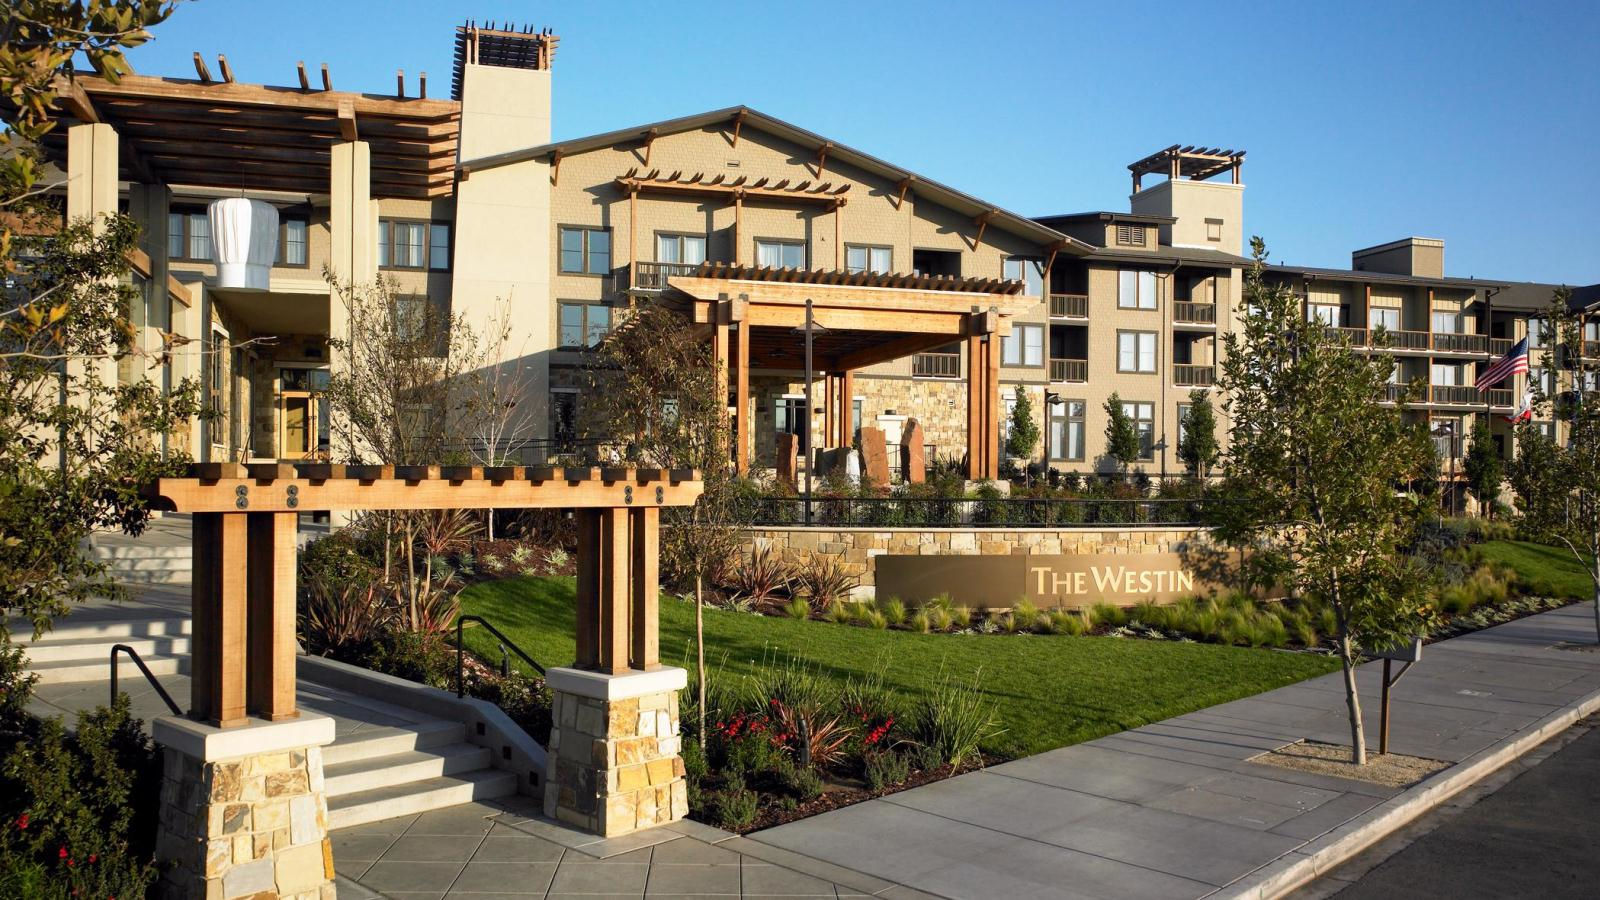 The Westin Verasa Napa - Bottlerock Napa